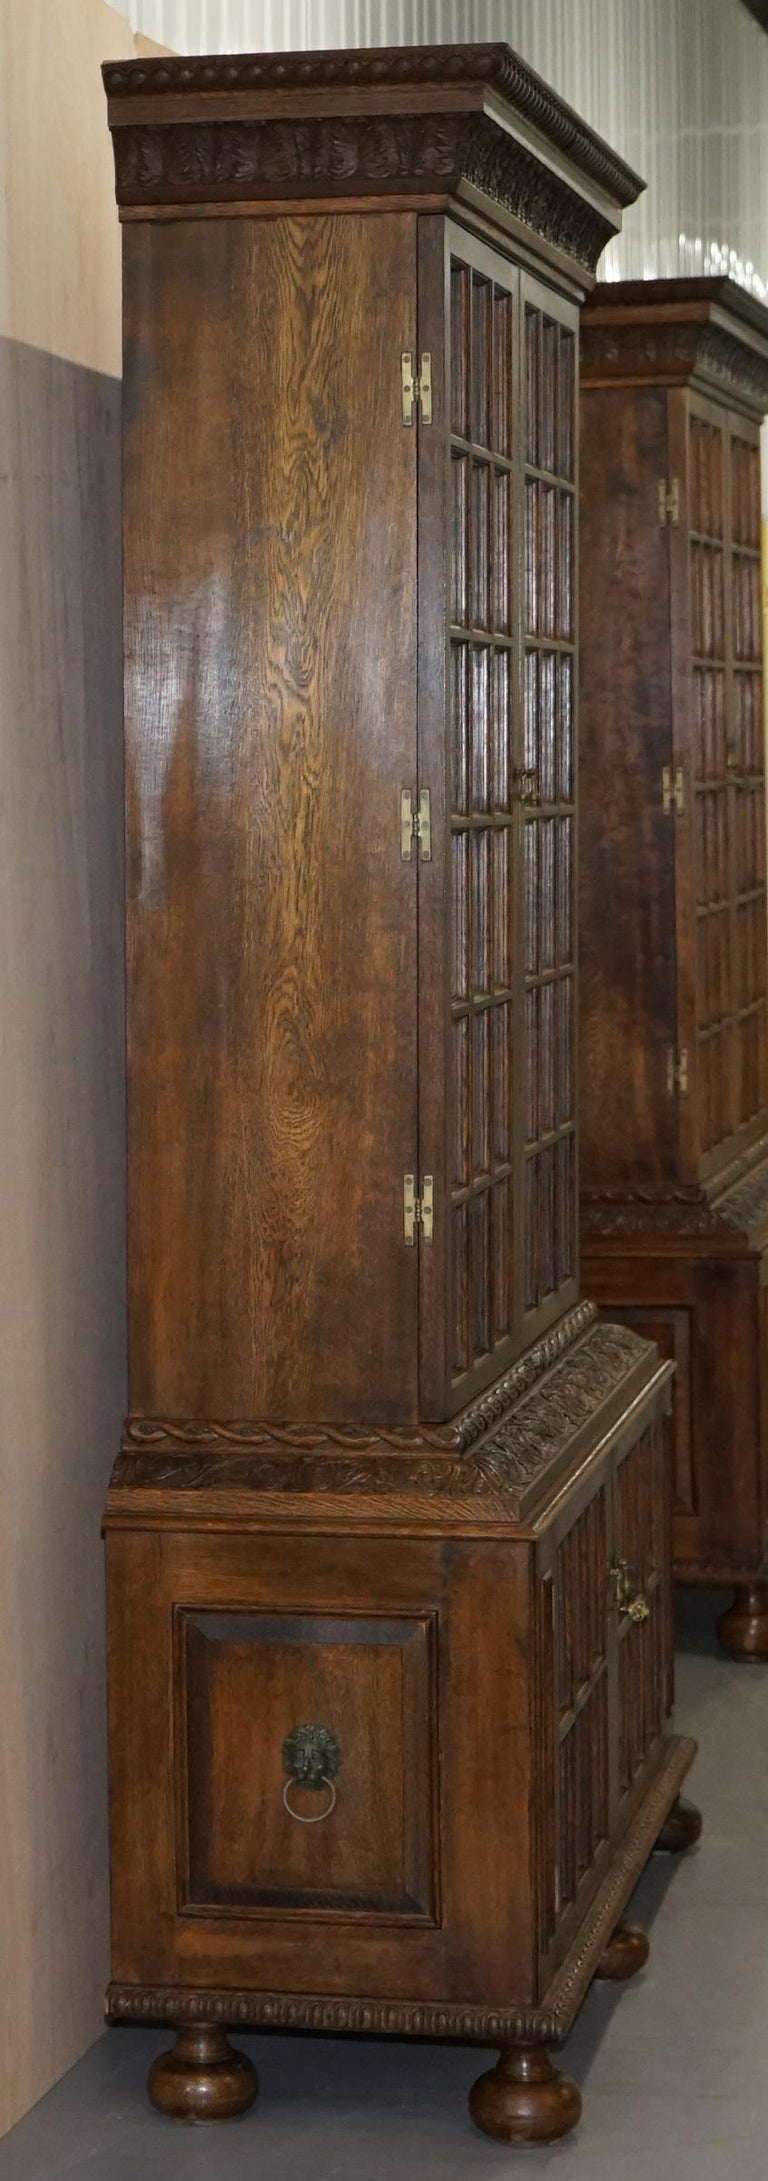 Samuel Pepys 1666 Oak Library Bookcases Pair High Provenance Carved by Forsyth For Sale 3